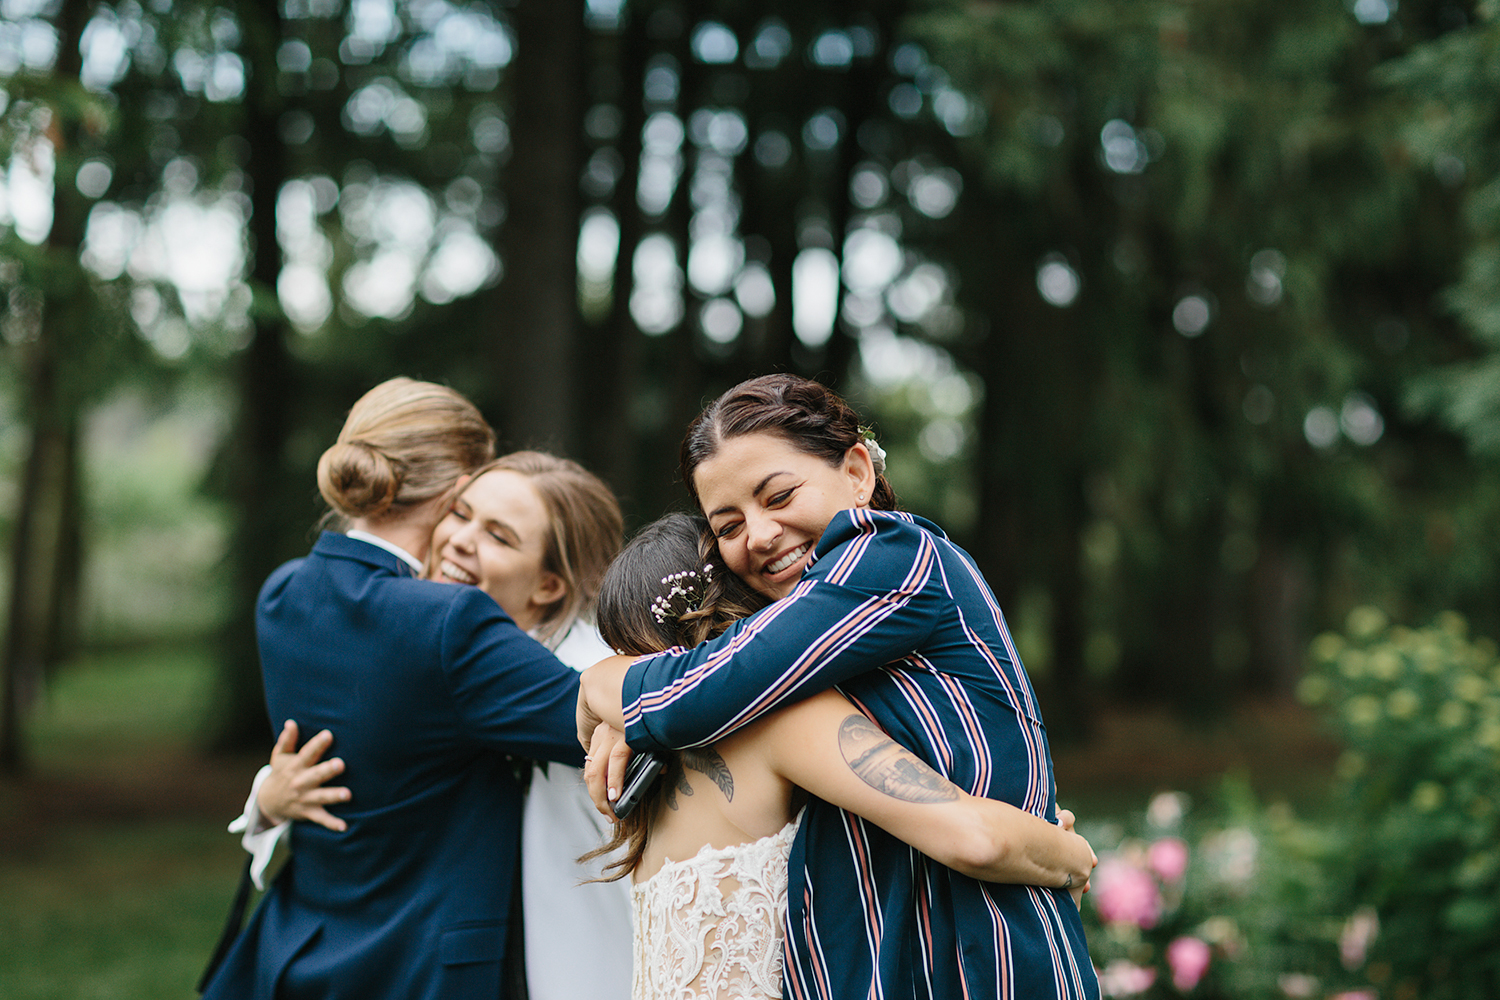 cambium-farms-wedding-ryanne-hollies-photography-gay-wedding-lgbtq-trendy-cool-badass-junebug-weddings-inspiration-cocktail-hour--candid-documentary-moments-brides-hugging-friends.jpg